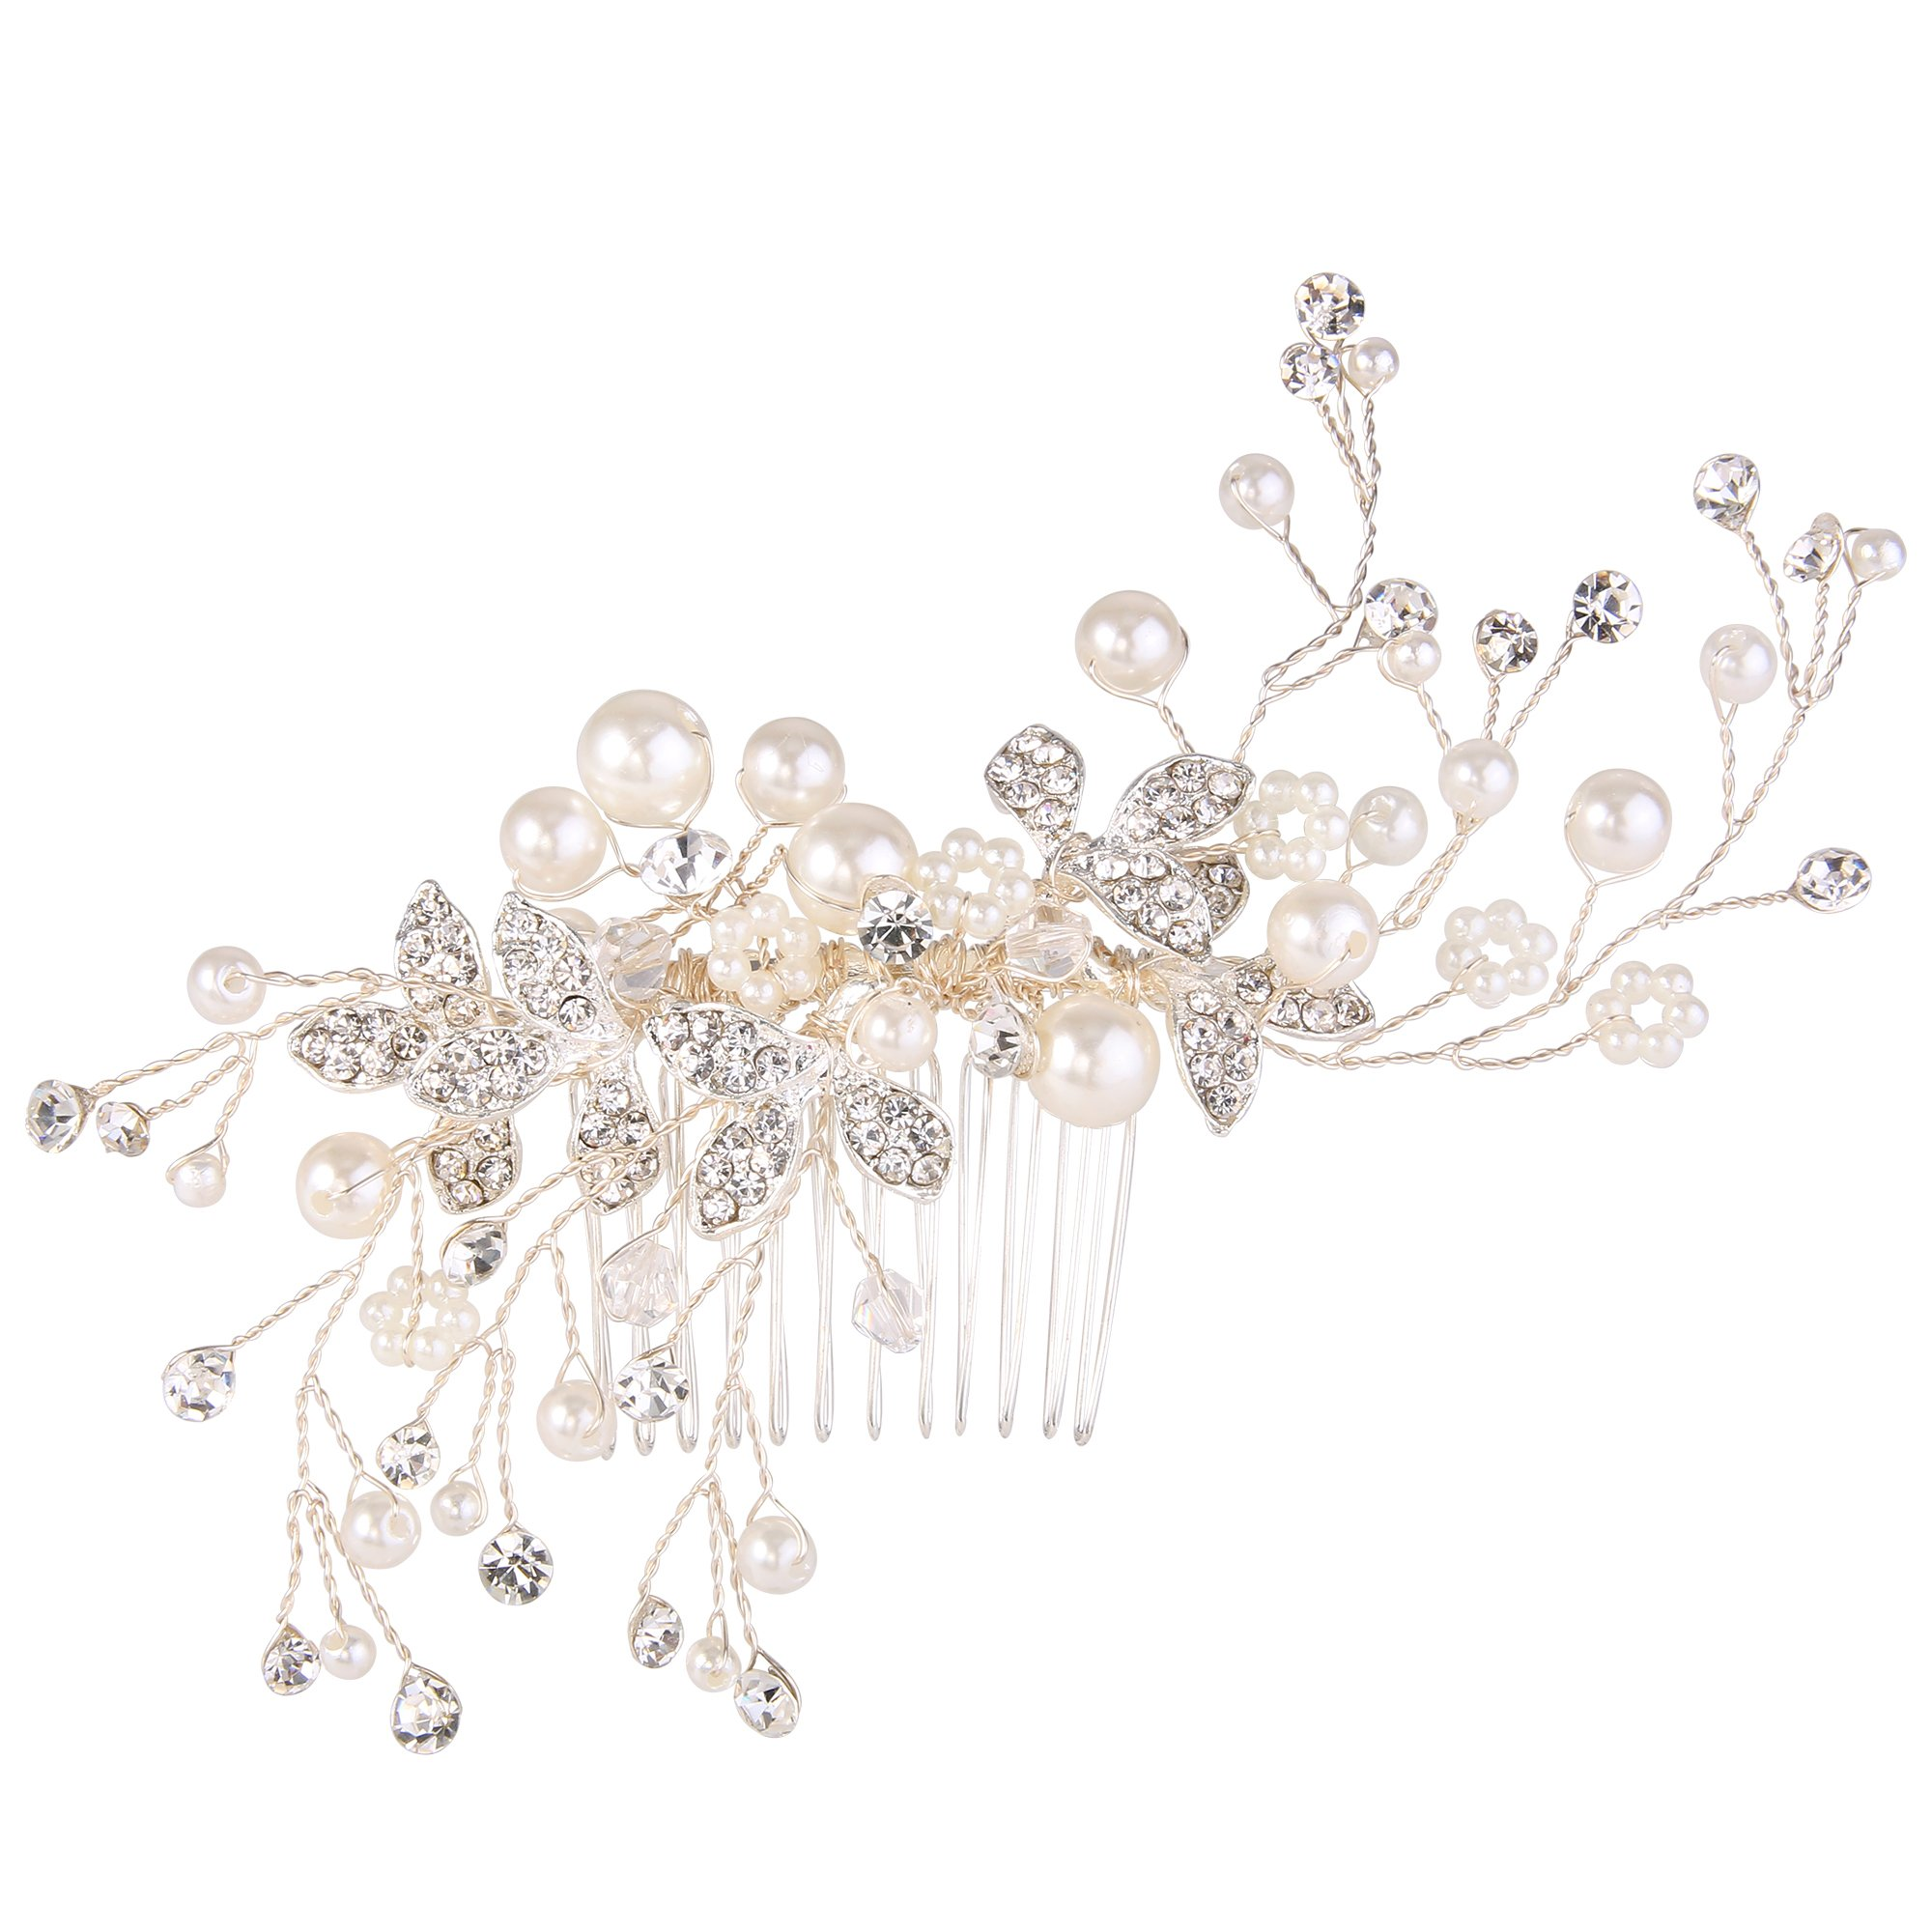 BriLove Wedding Bridal Hair Comb Hair Accessories with Ivory Color Simulated Pearl Crystal Floral DIY Handmade Bendable Filigree Bead for Women Clear Silver-Tone